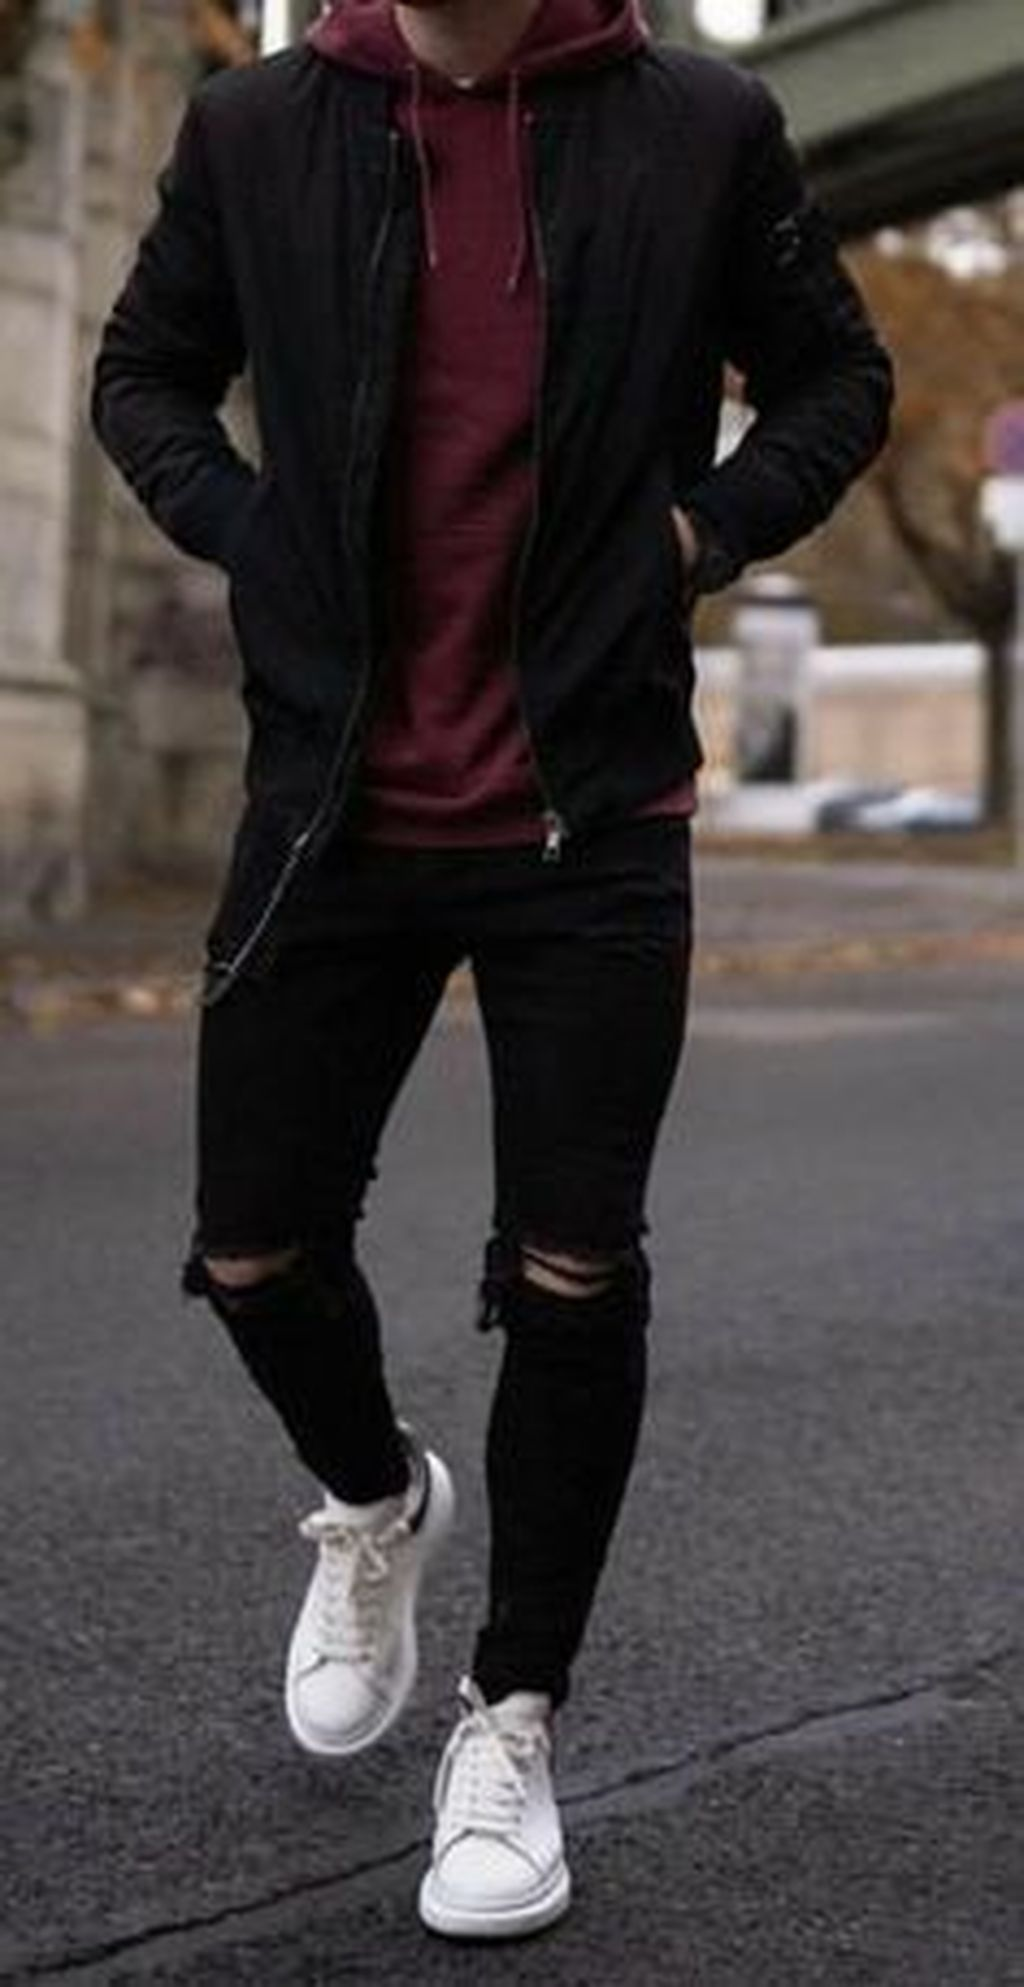 30 Awesome Winter Outfits Ideas For Men In 2020 Mens Casual Outfits Mens Fashion Casual Outfits Men Fashion Casual Outfits